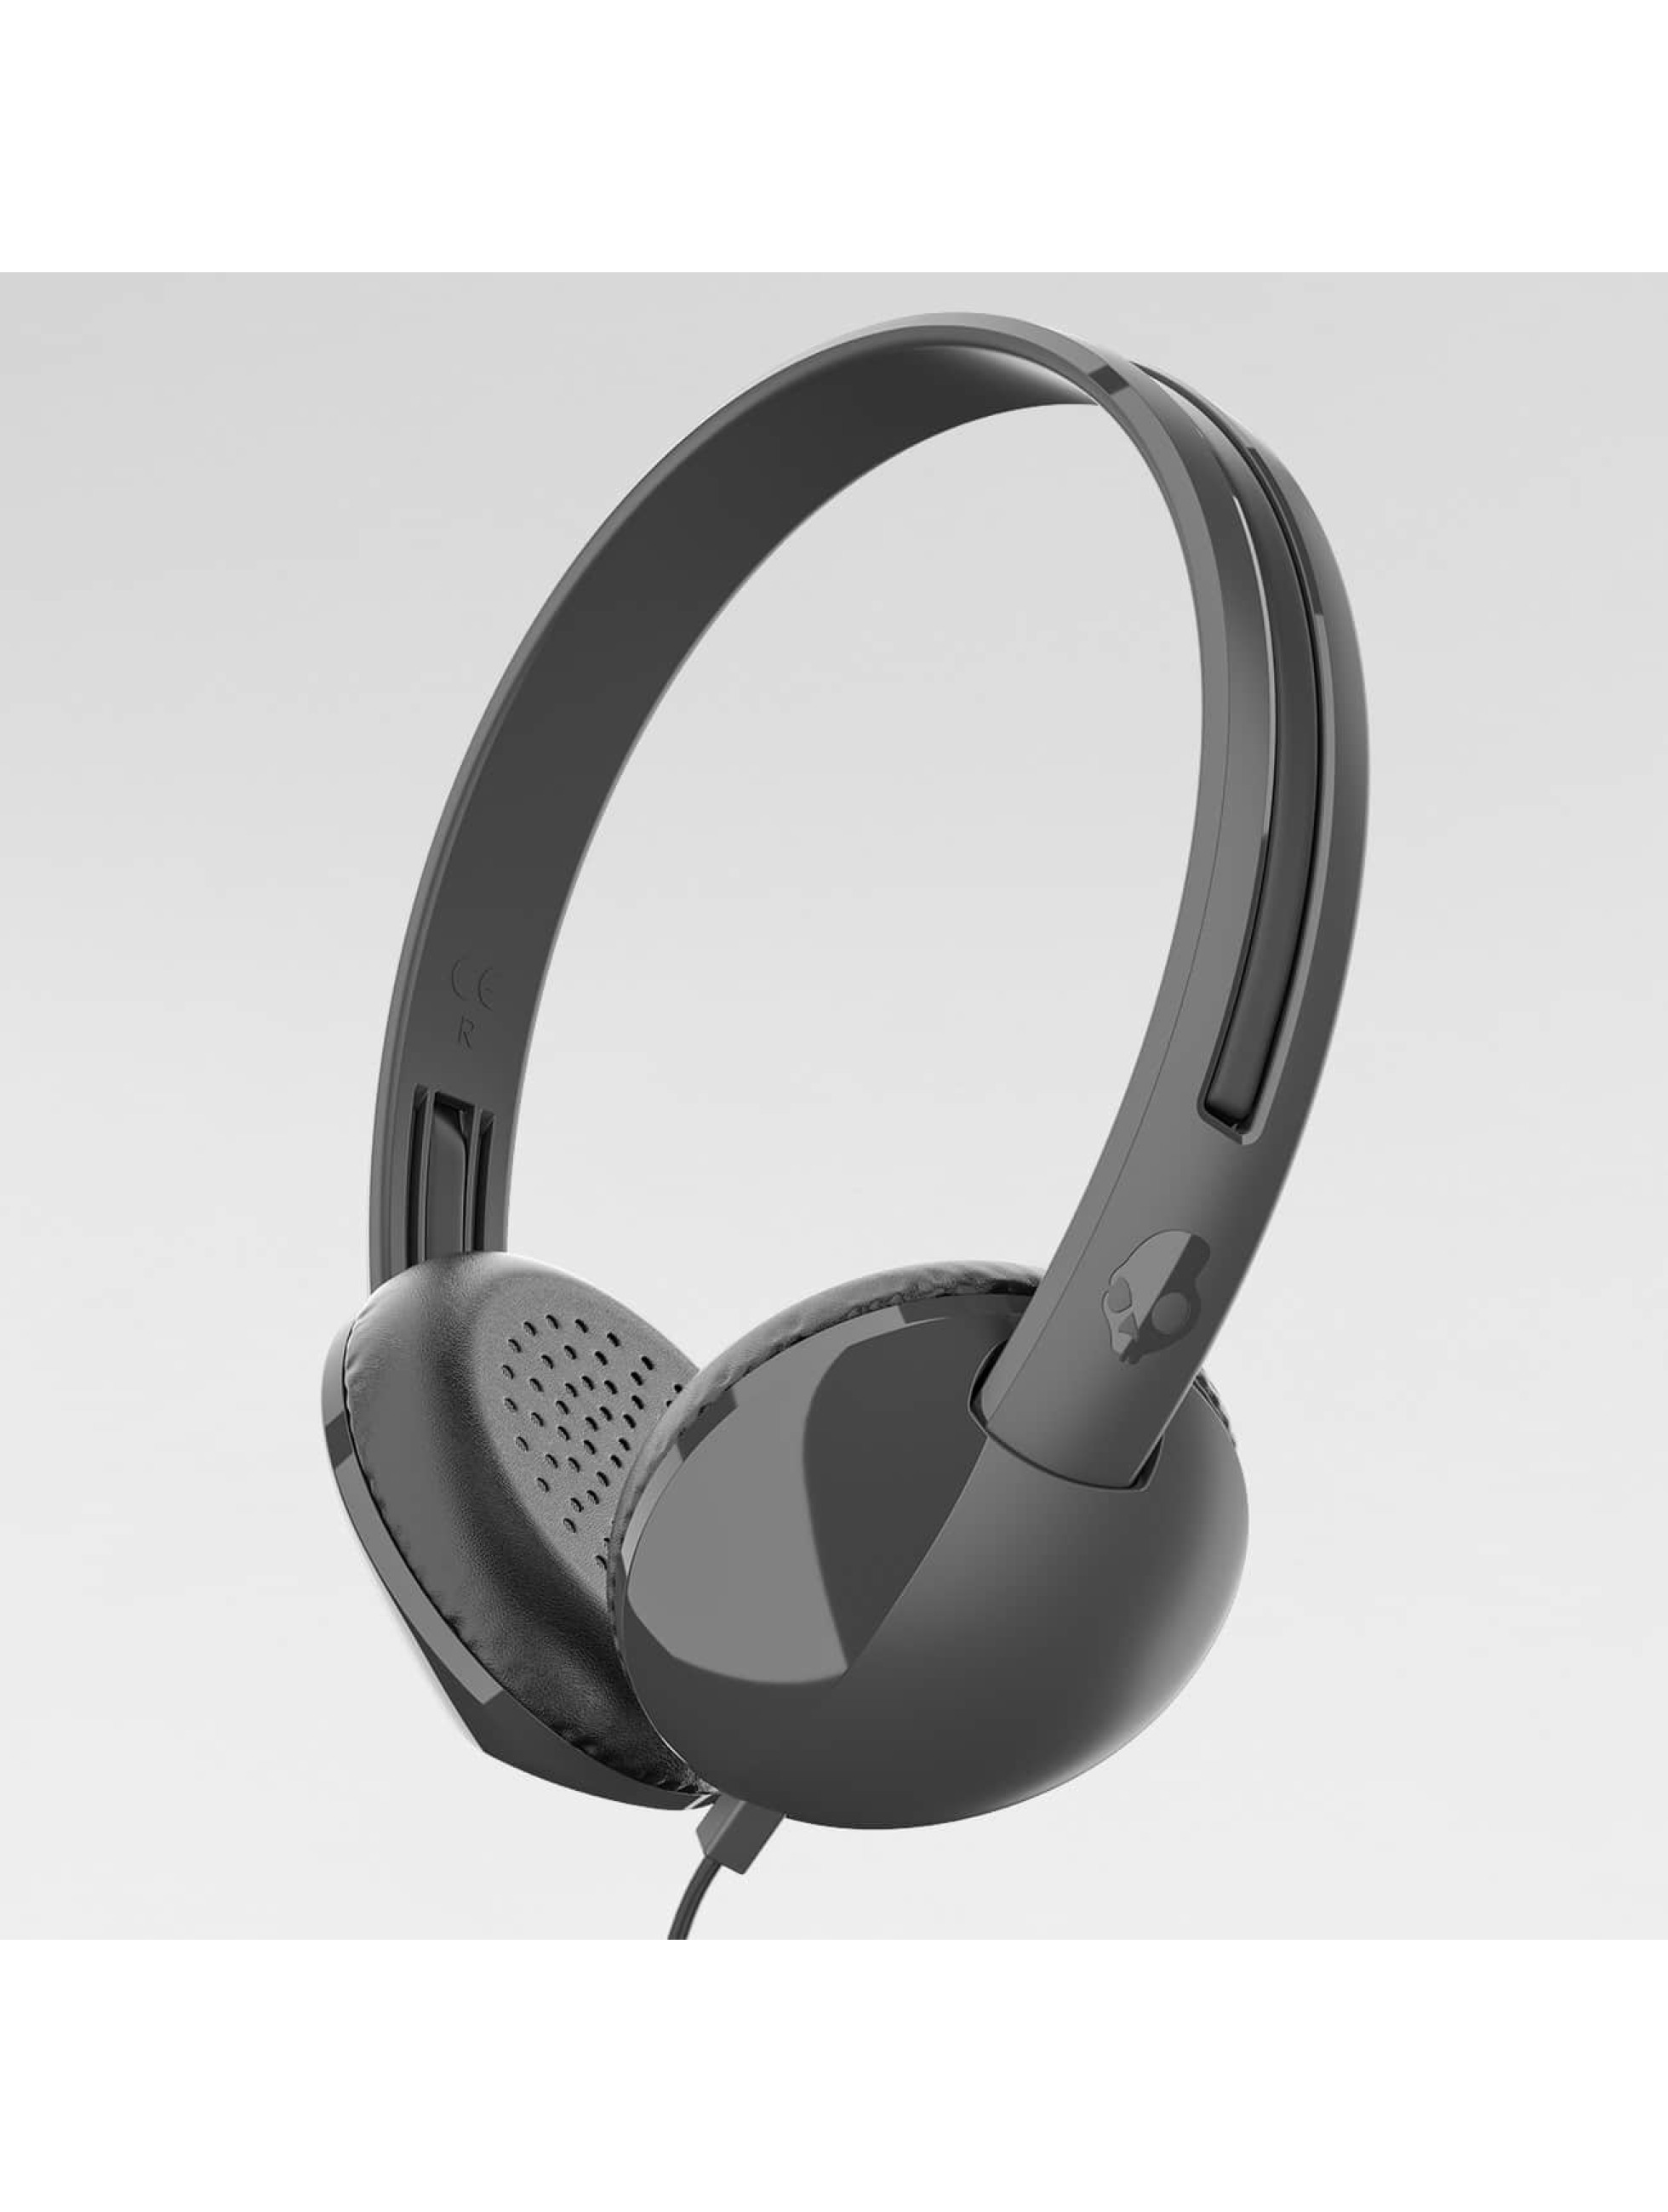 Skullcandy Sluchátka Stim Mic 1 On Ear èierna